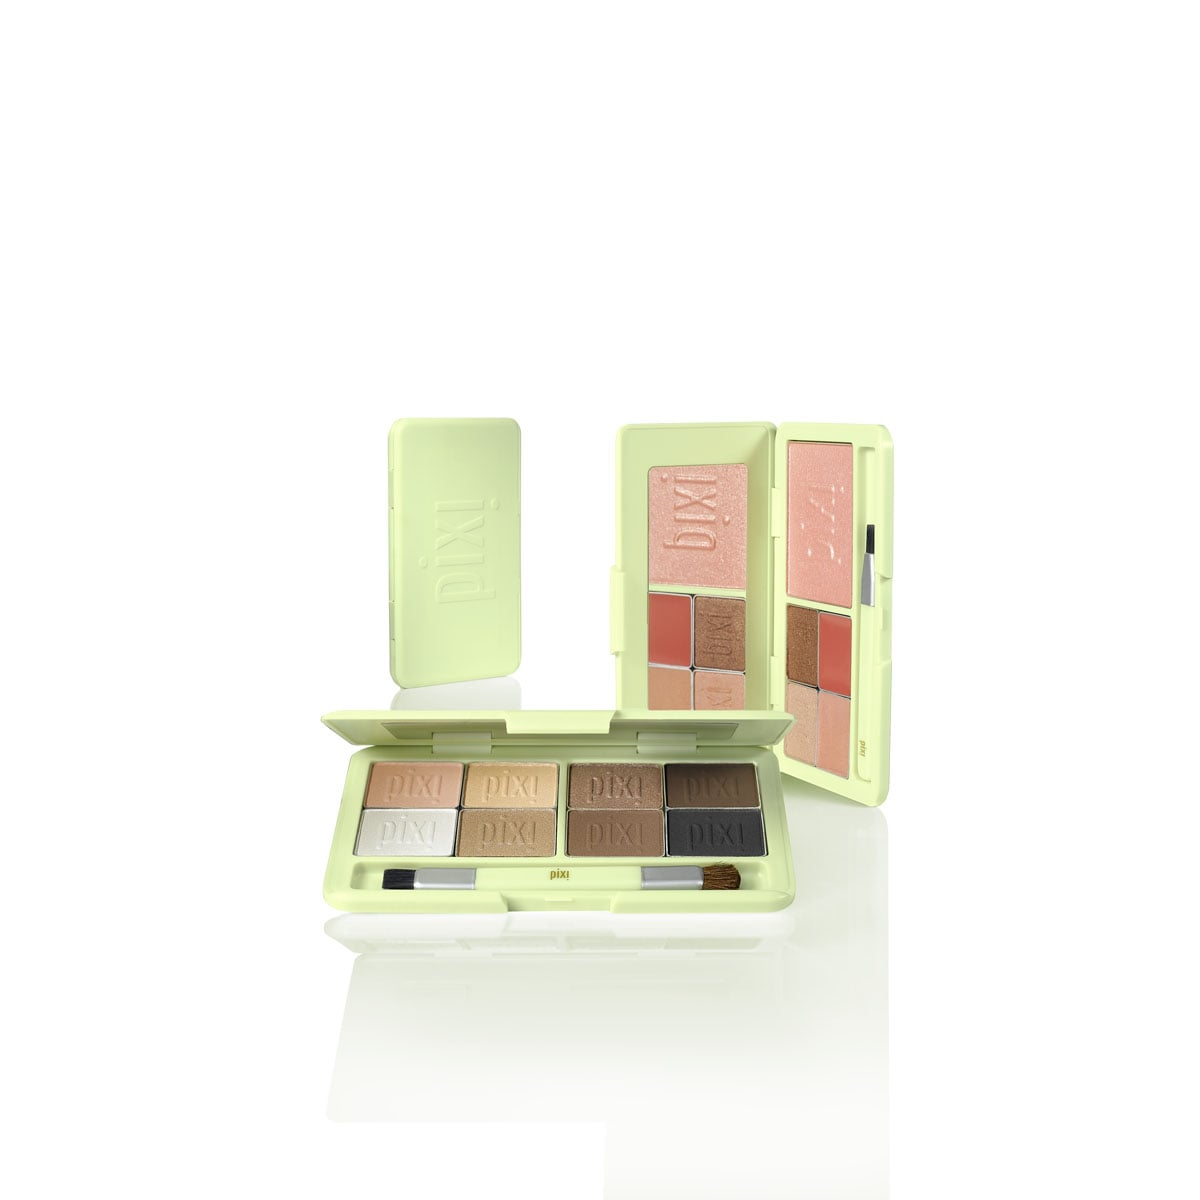 Pixi by Petra Eye Beauty Kit ($28) — excellent for a nude or smokey eye.